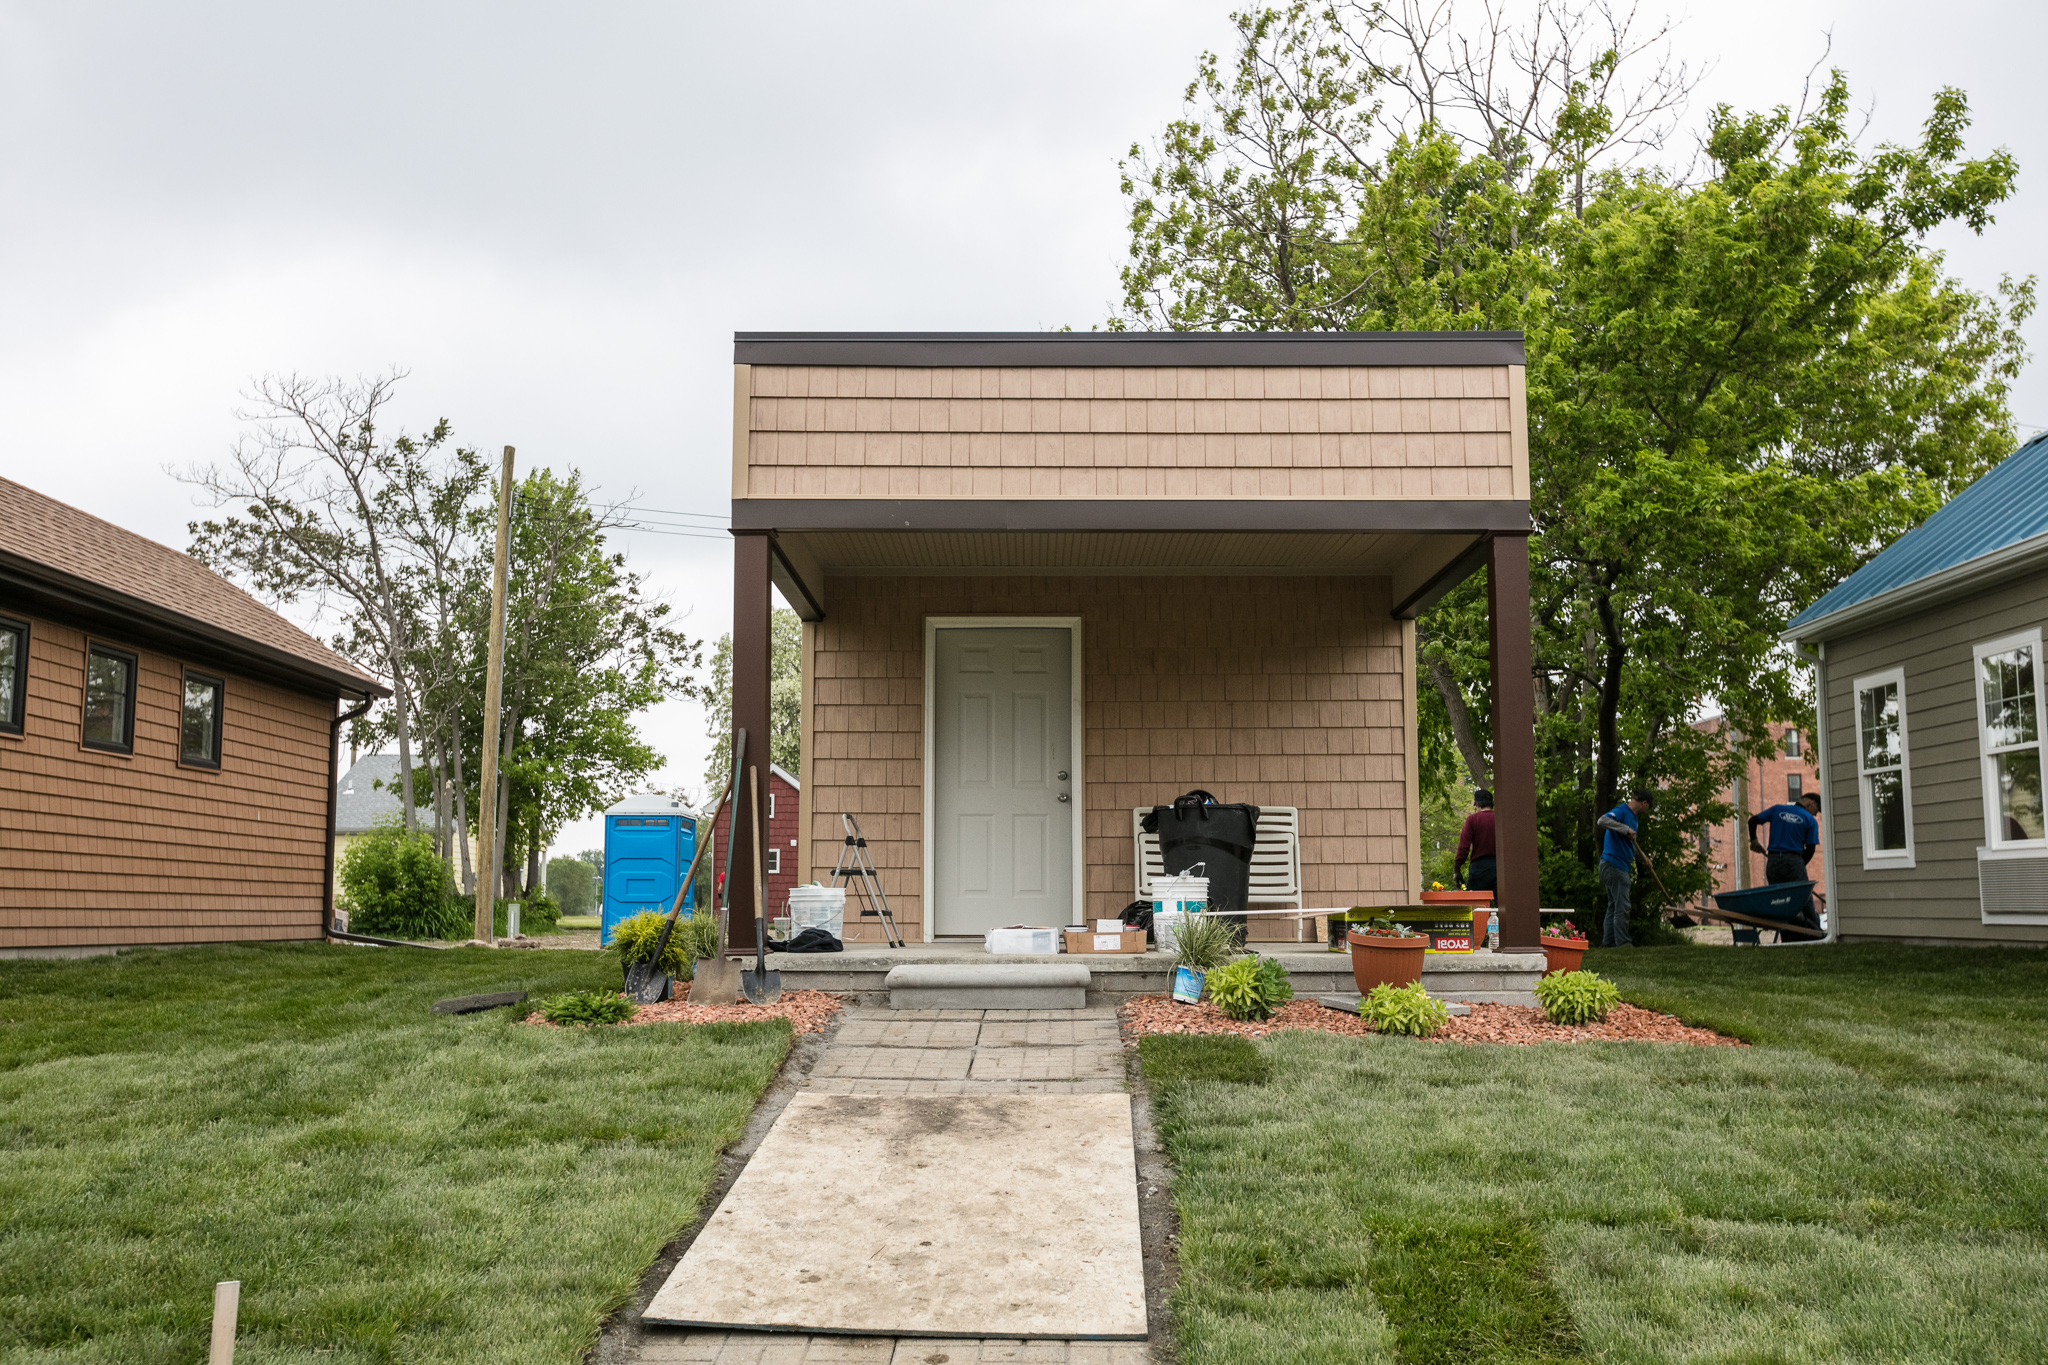 Photos Of Homes a tiny home community rises in detroit - curbed detroit